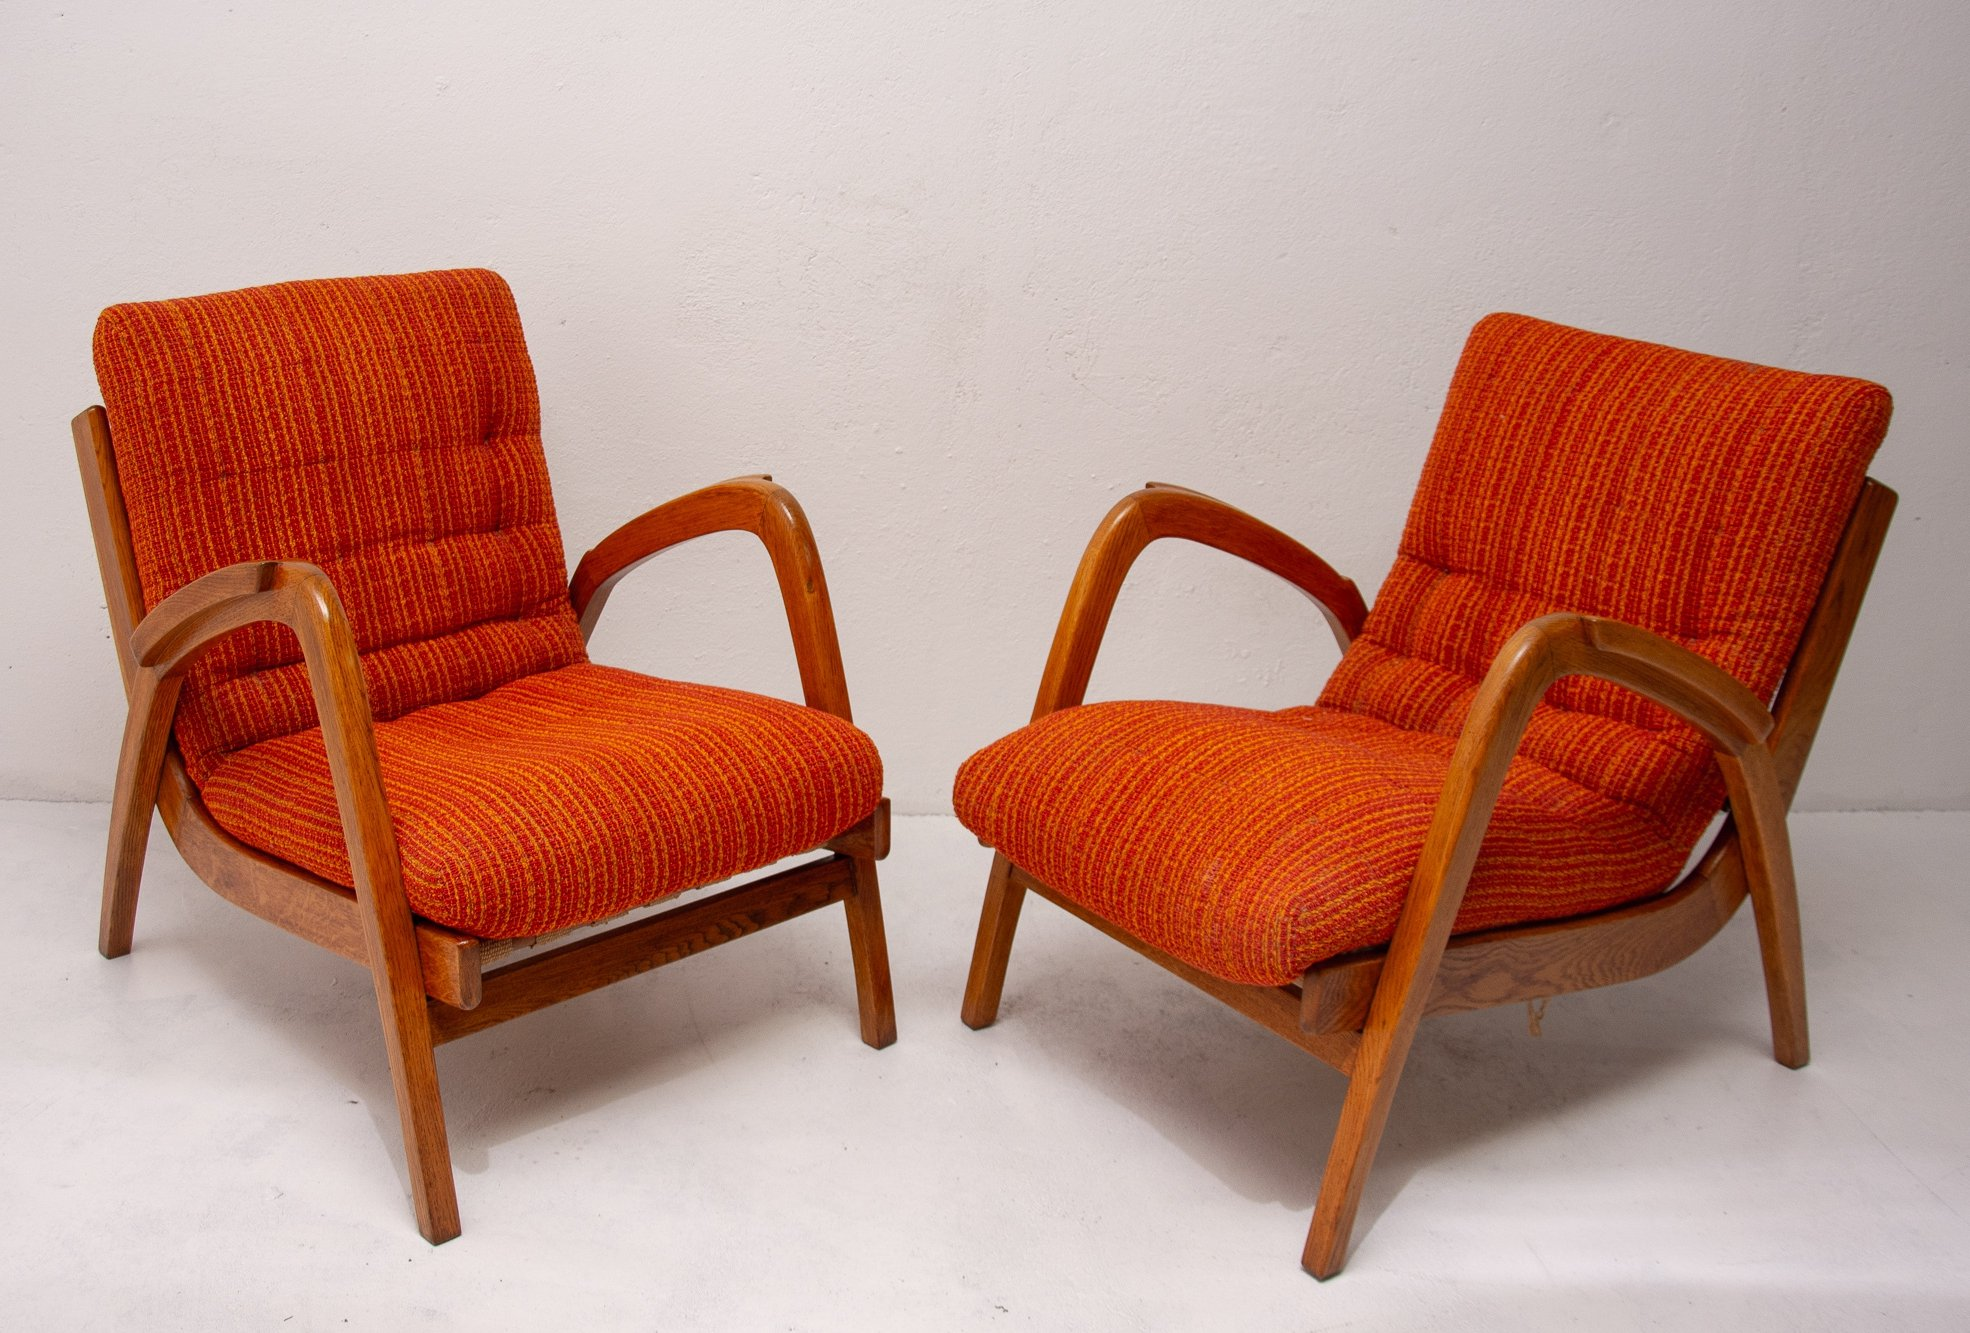 mid century armchairs with removable cushions by jan vaněk czechoslovakia 1940s